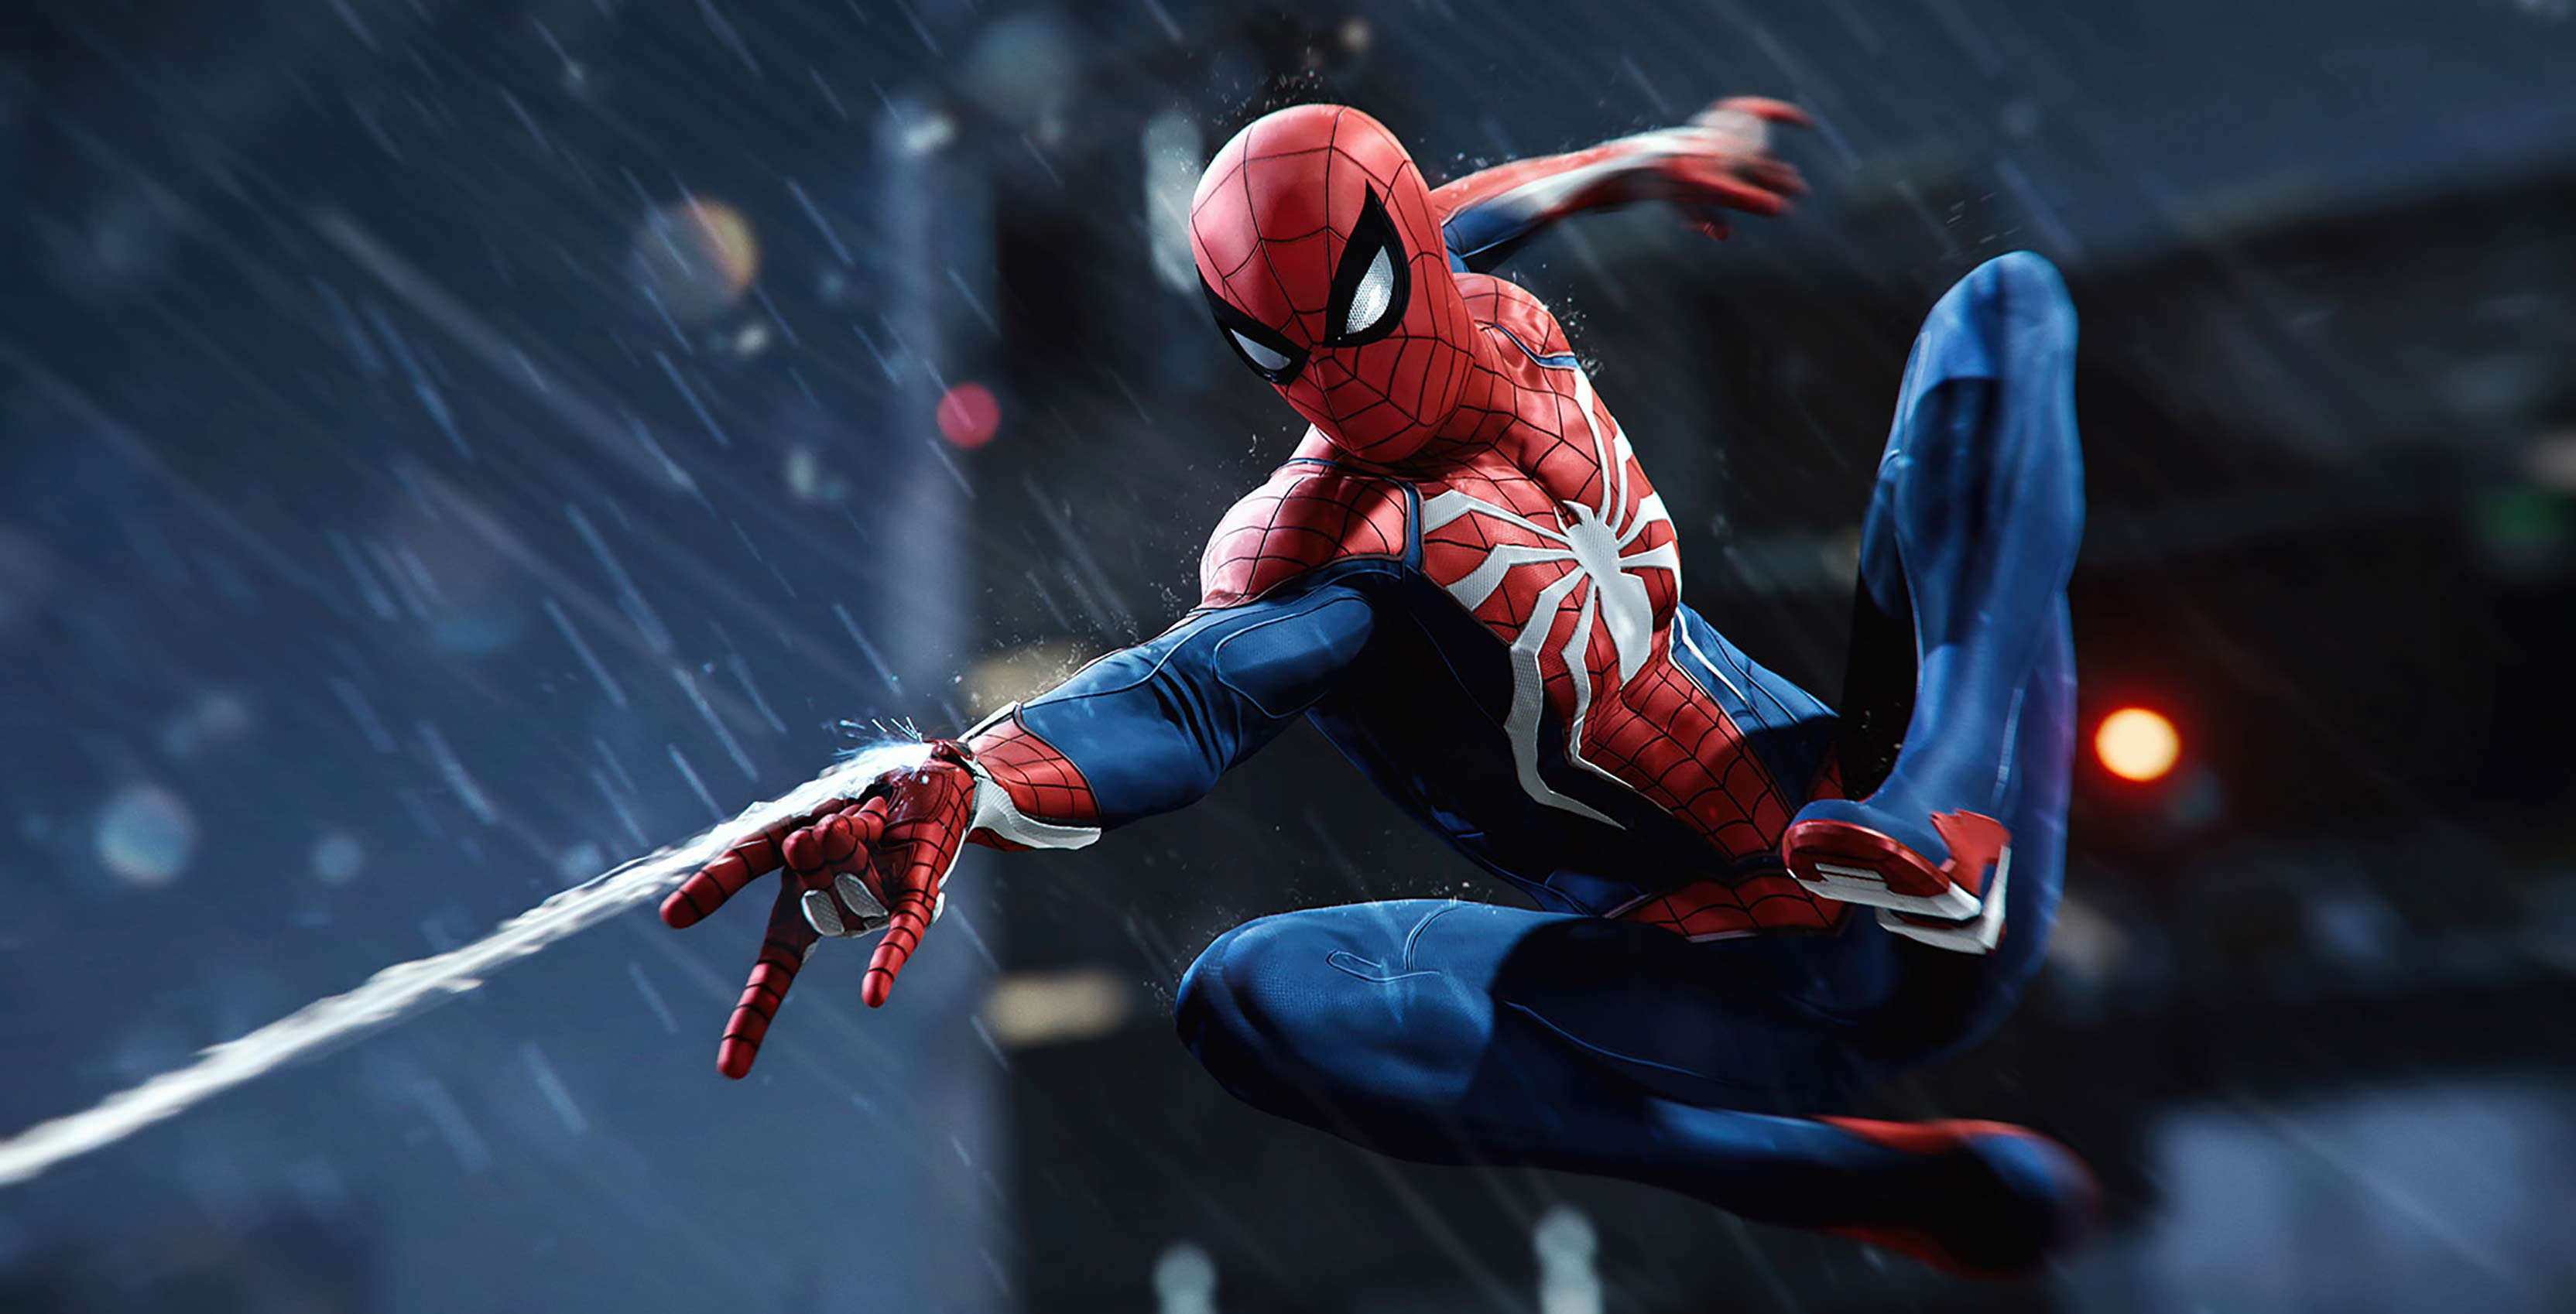 PS4 Black Friday deals include $200 Spider-Man and PSVR bundles